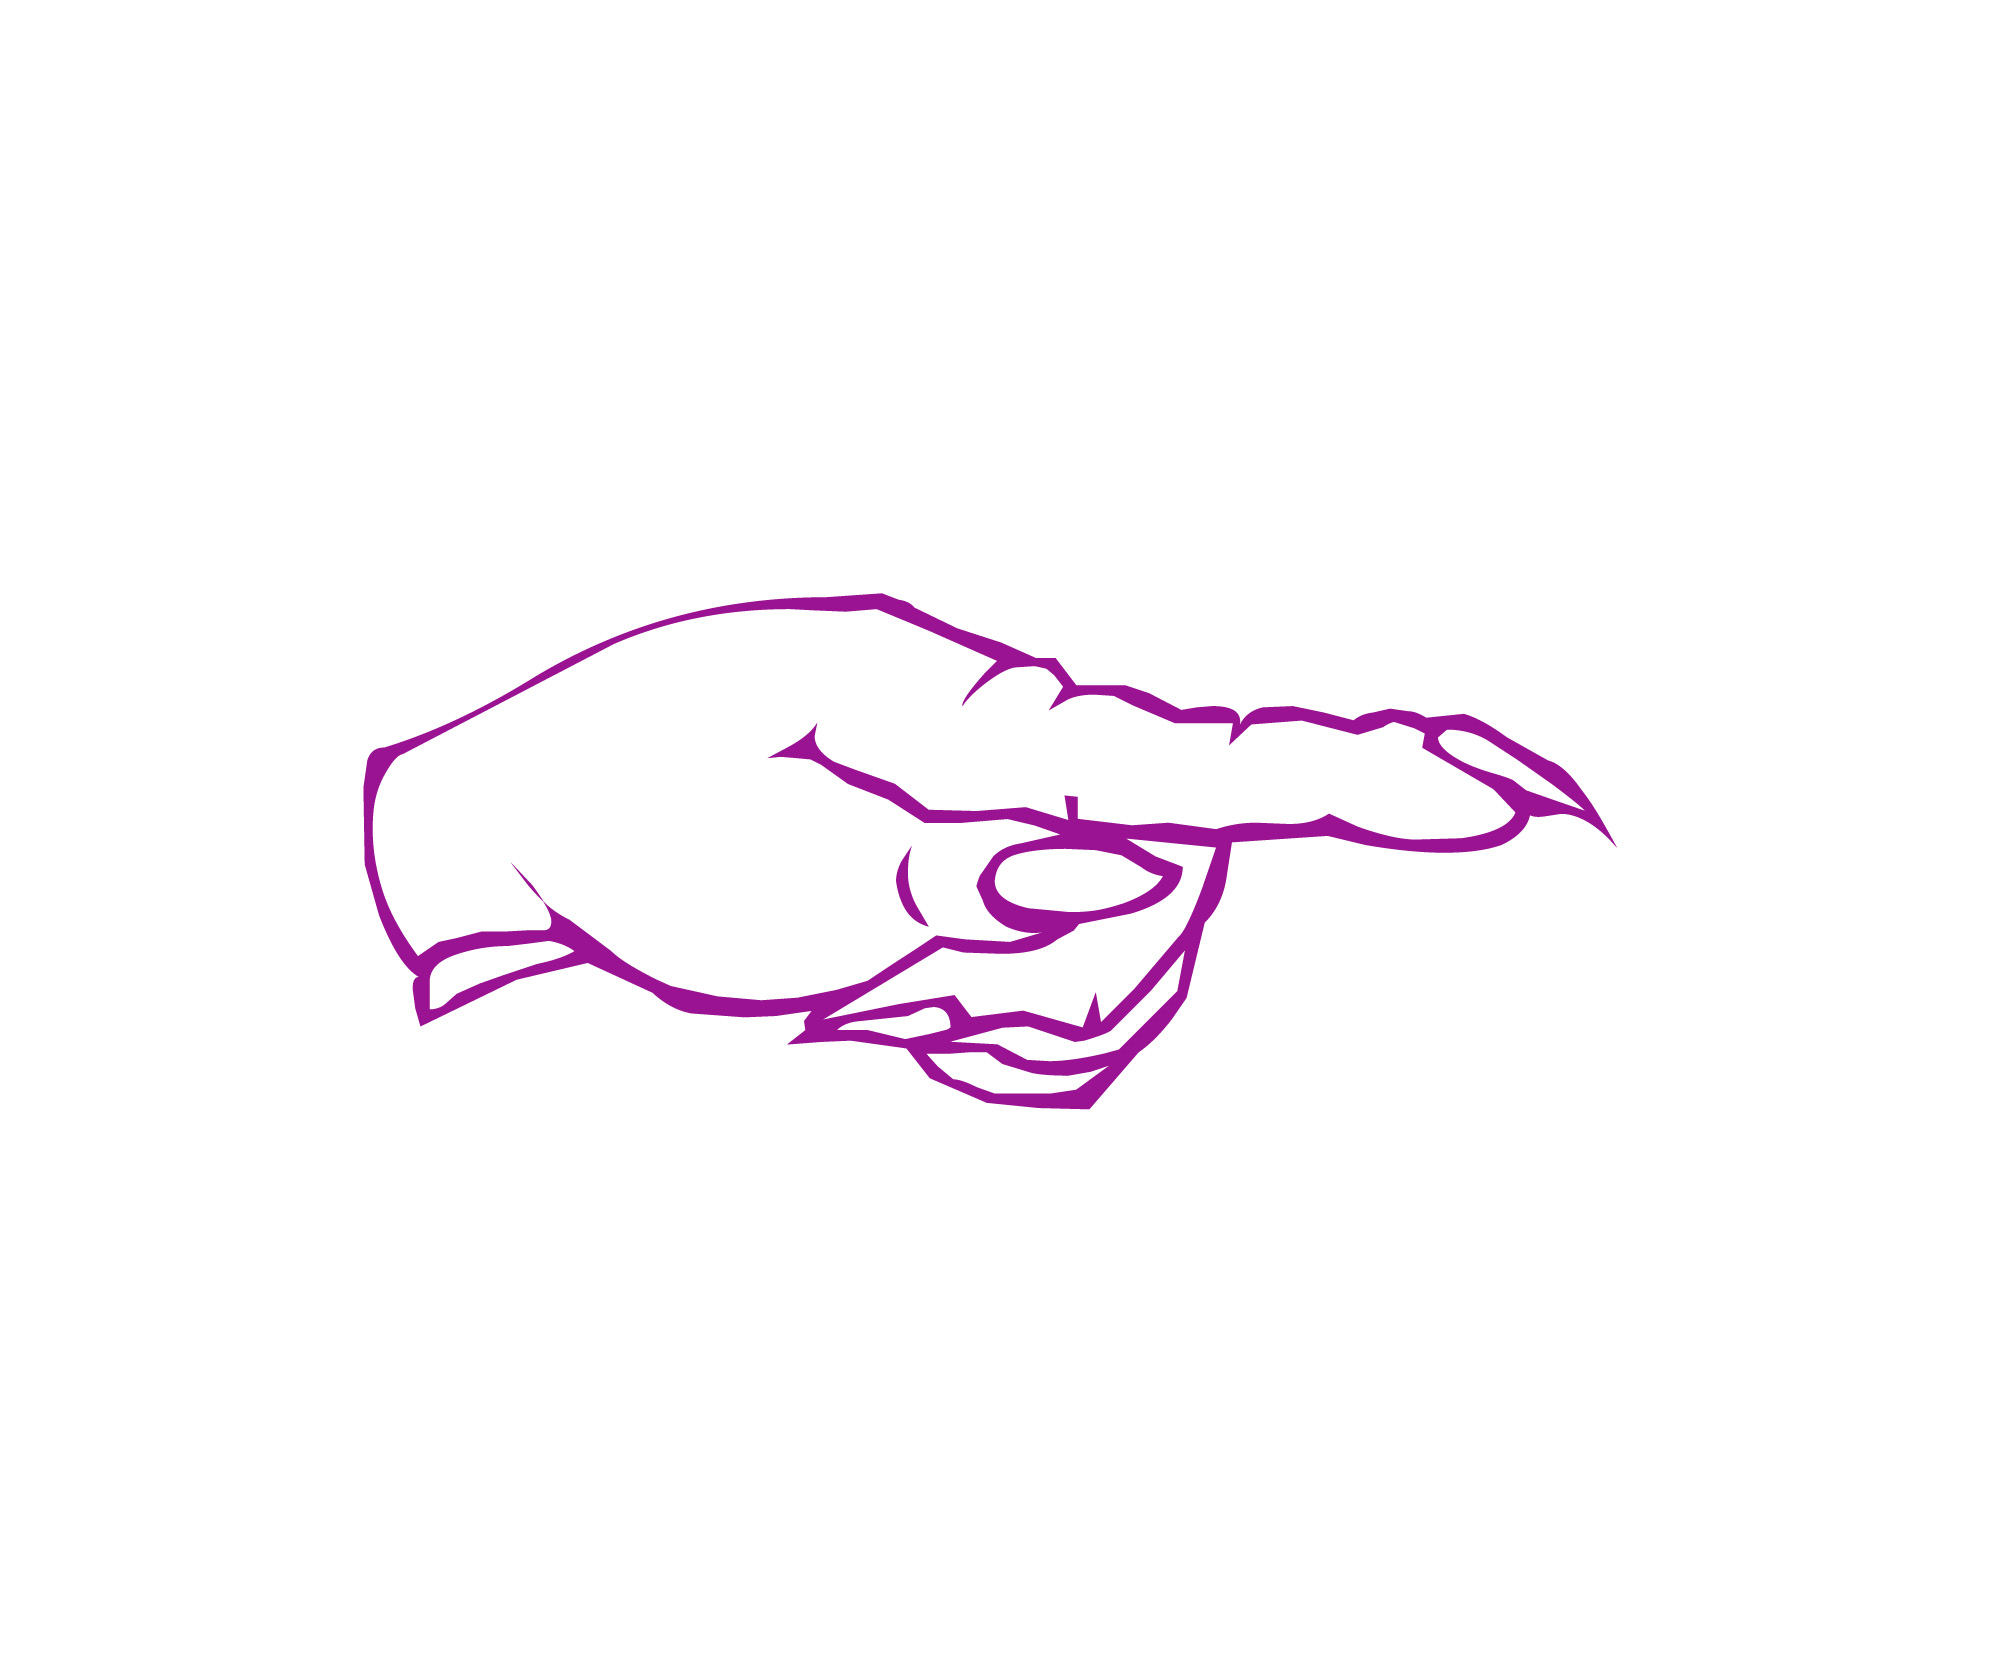 Image of pointing finger clipart | Freebie.Photography